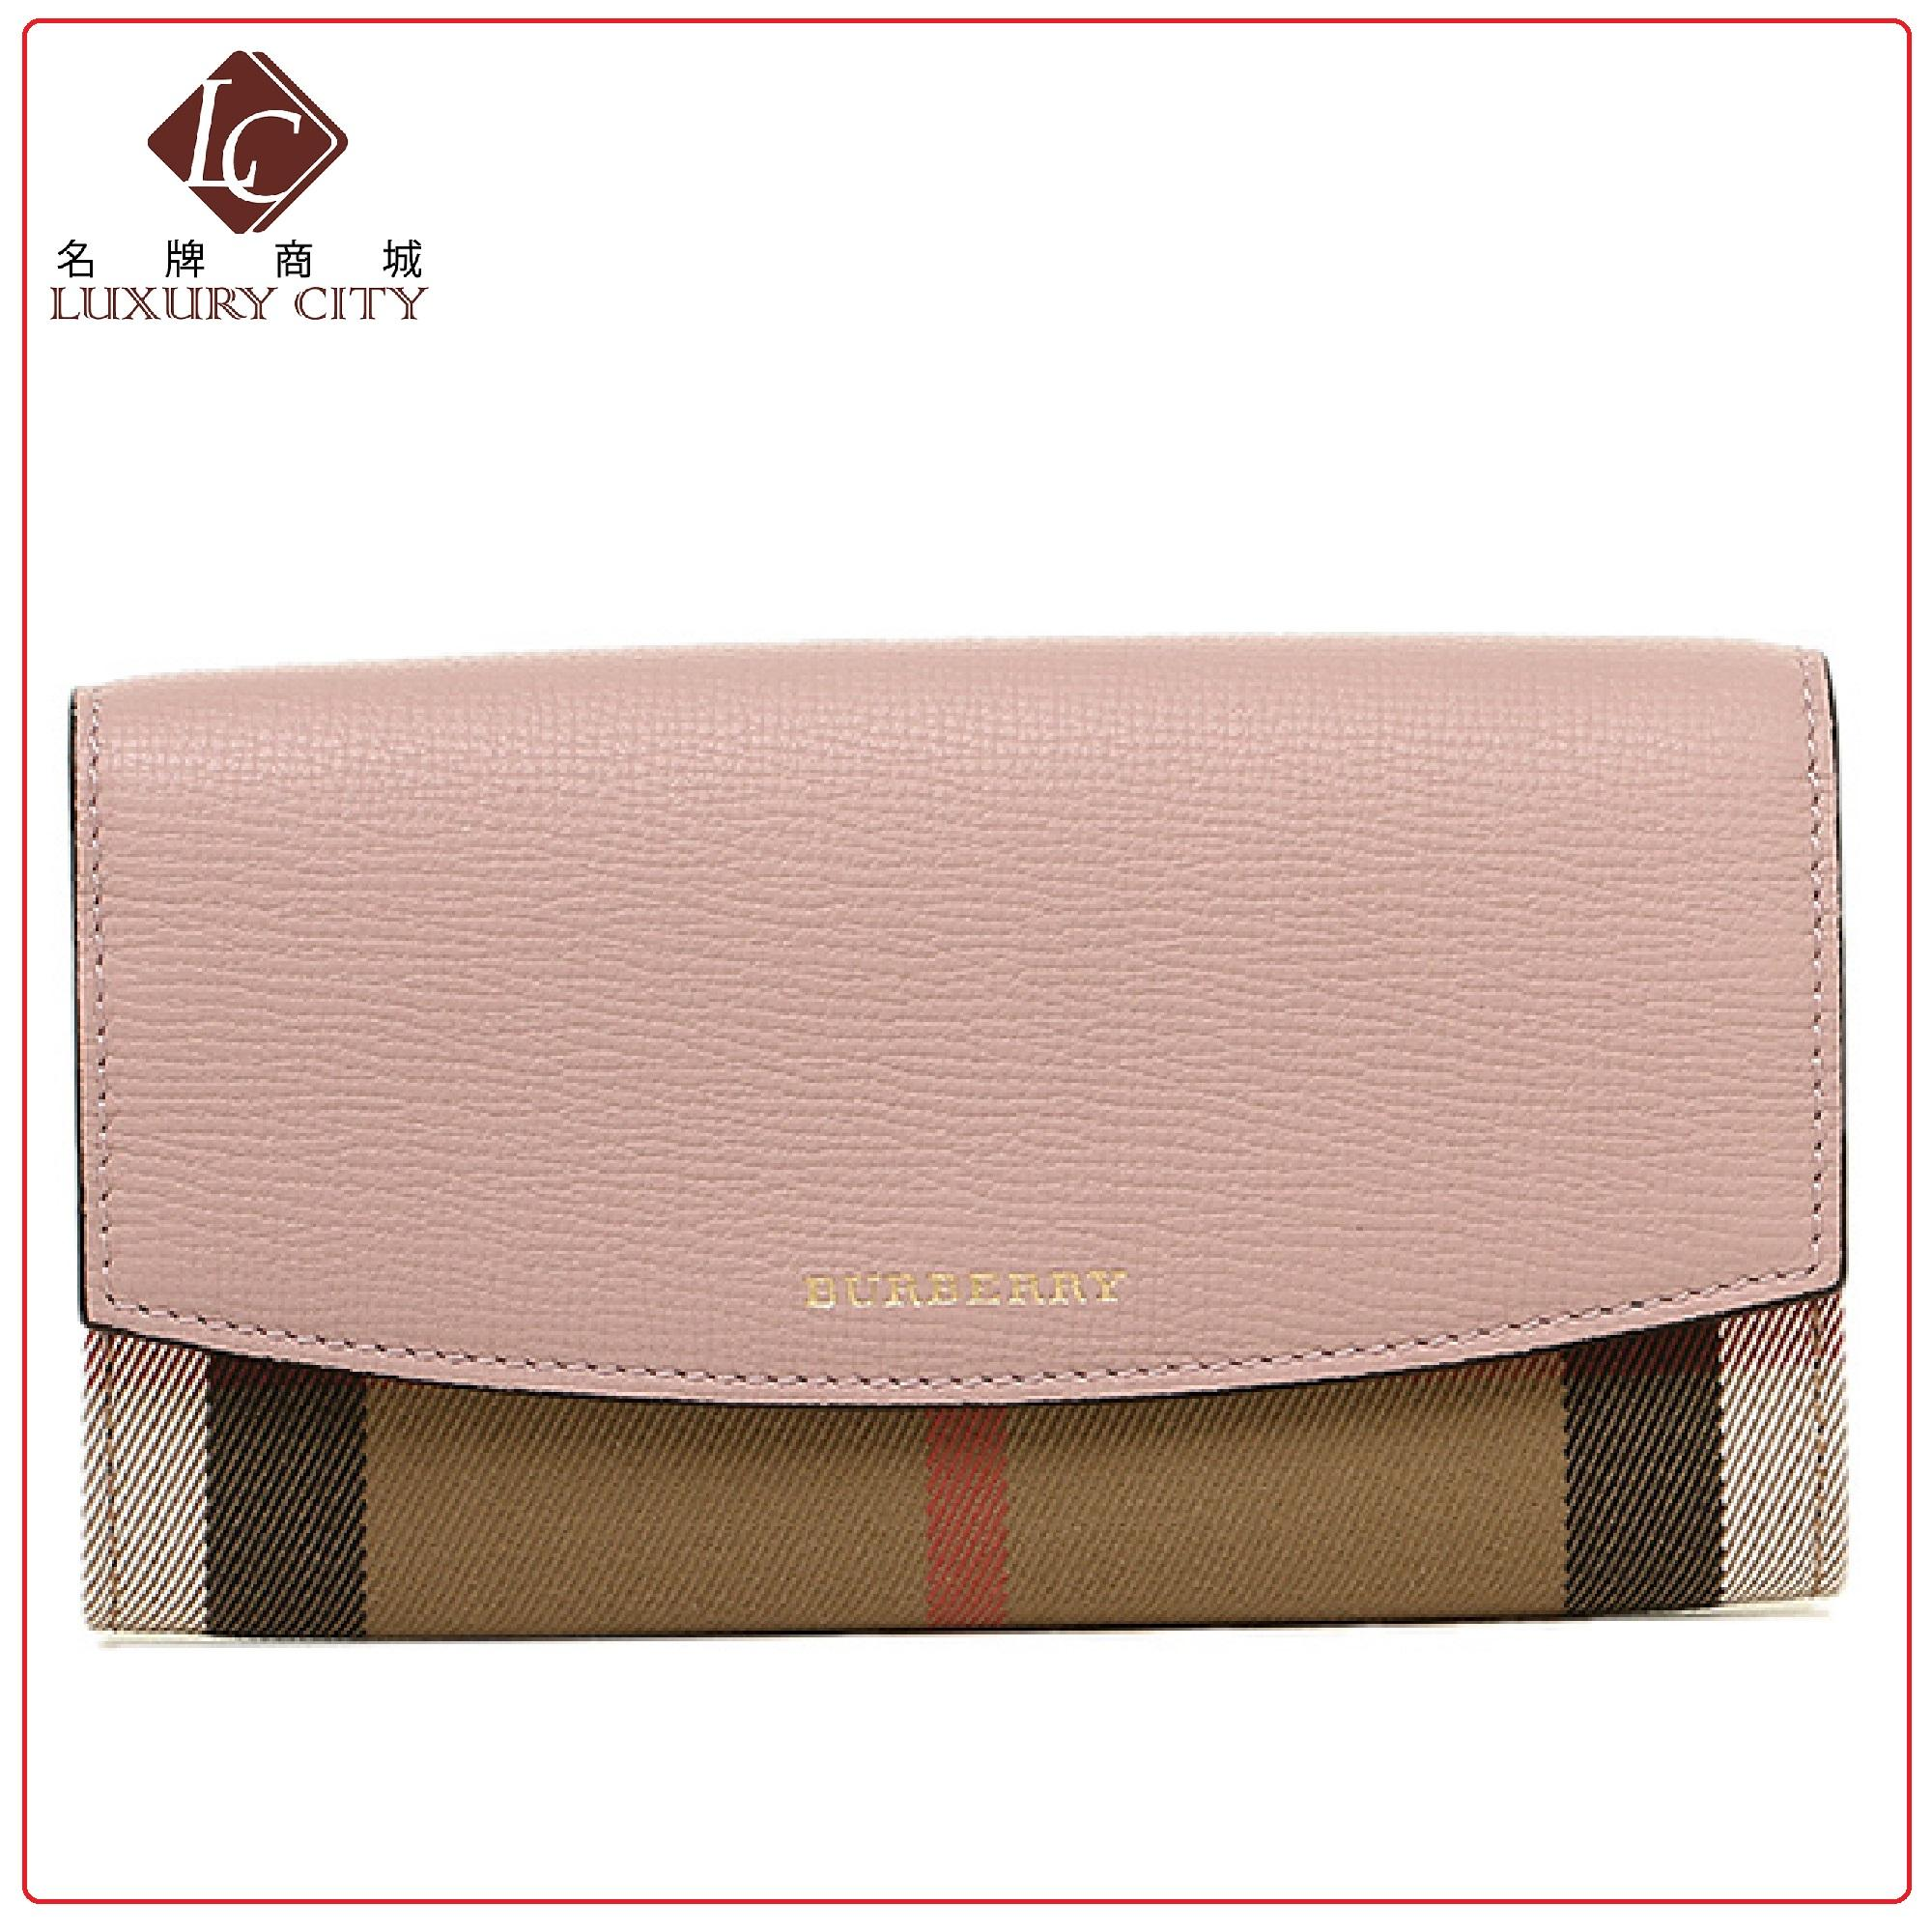 8fe1ea1574ca House Check and Leather Continental Wallet BURBERRY-3996860